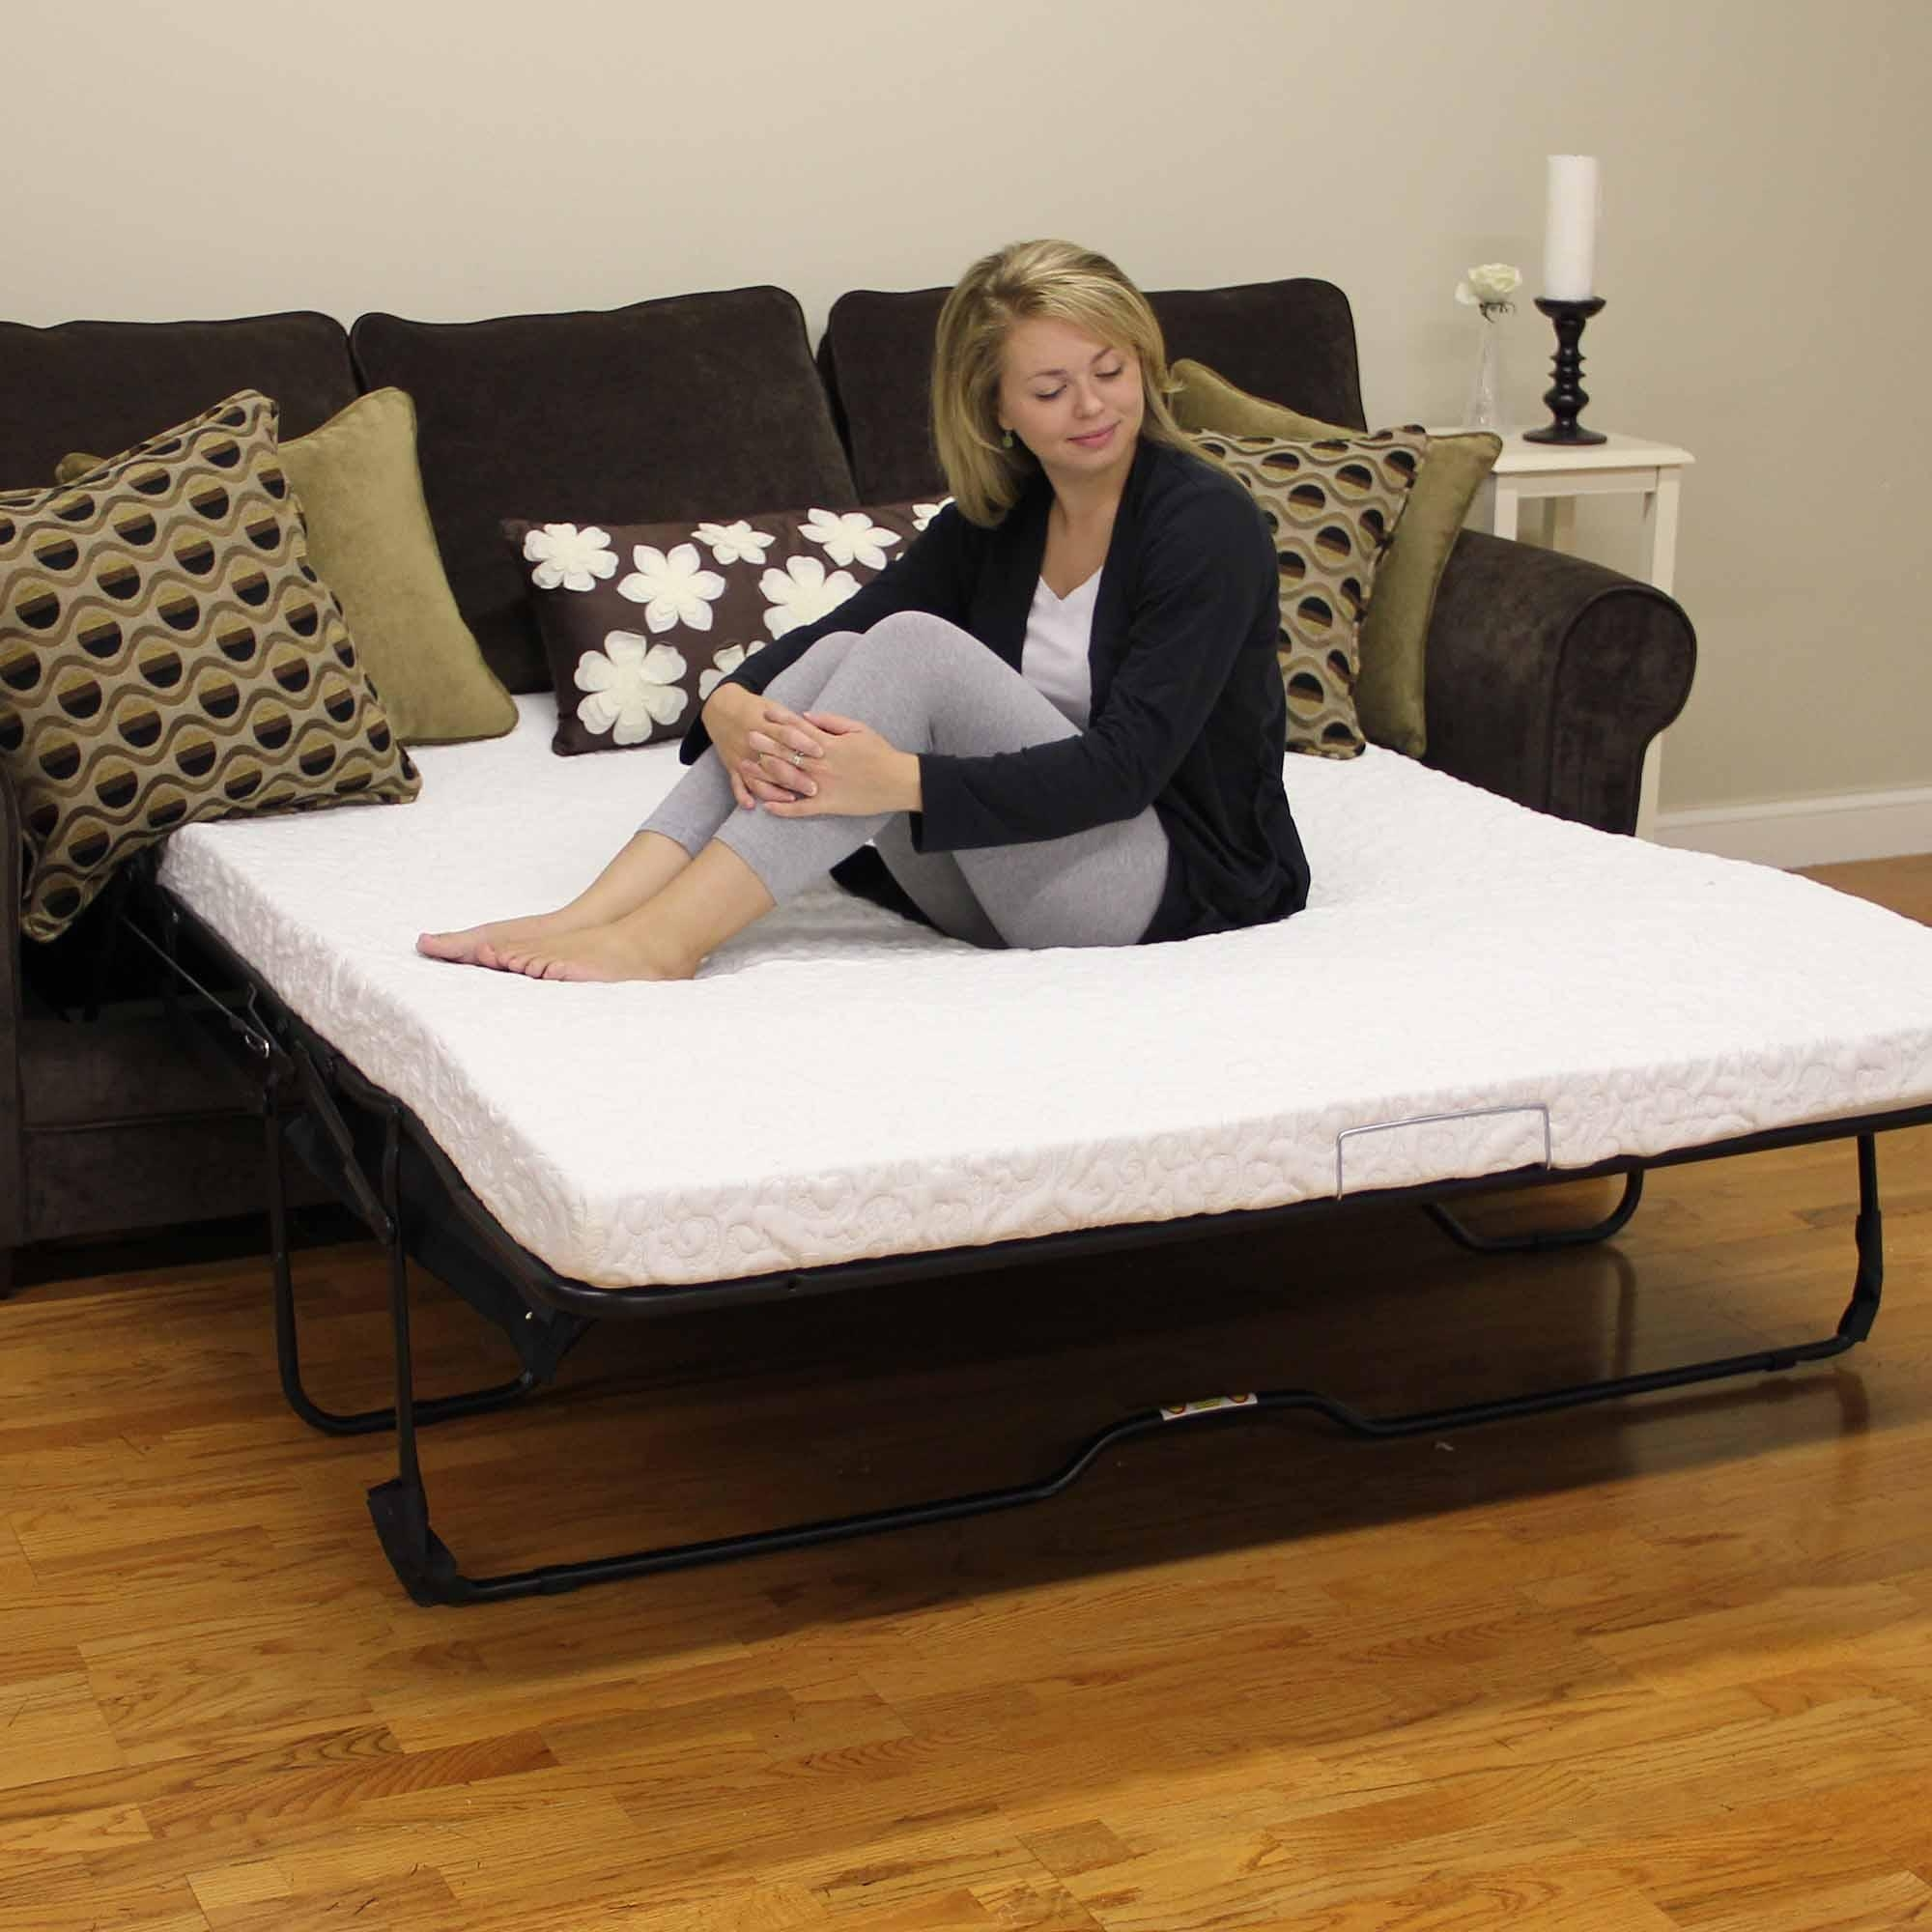 Futon Beds Queen Size | Tehranmix Decoration In Sleeper Sofas Mattress Covers (View 12 of 20)